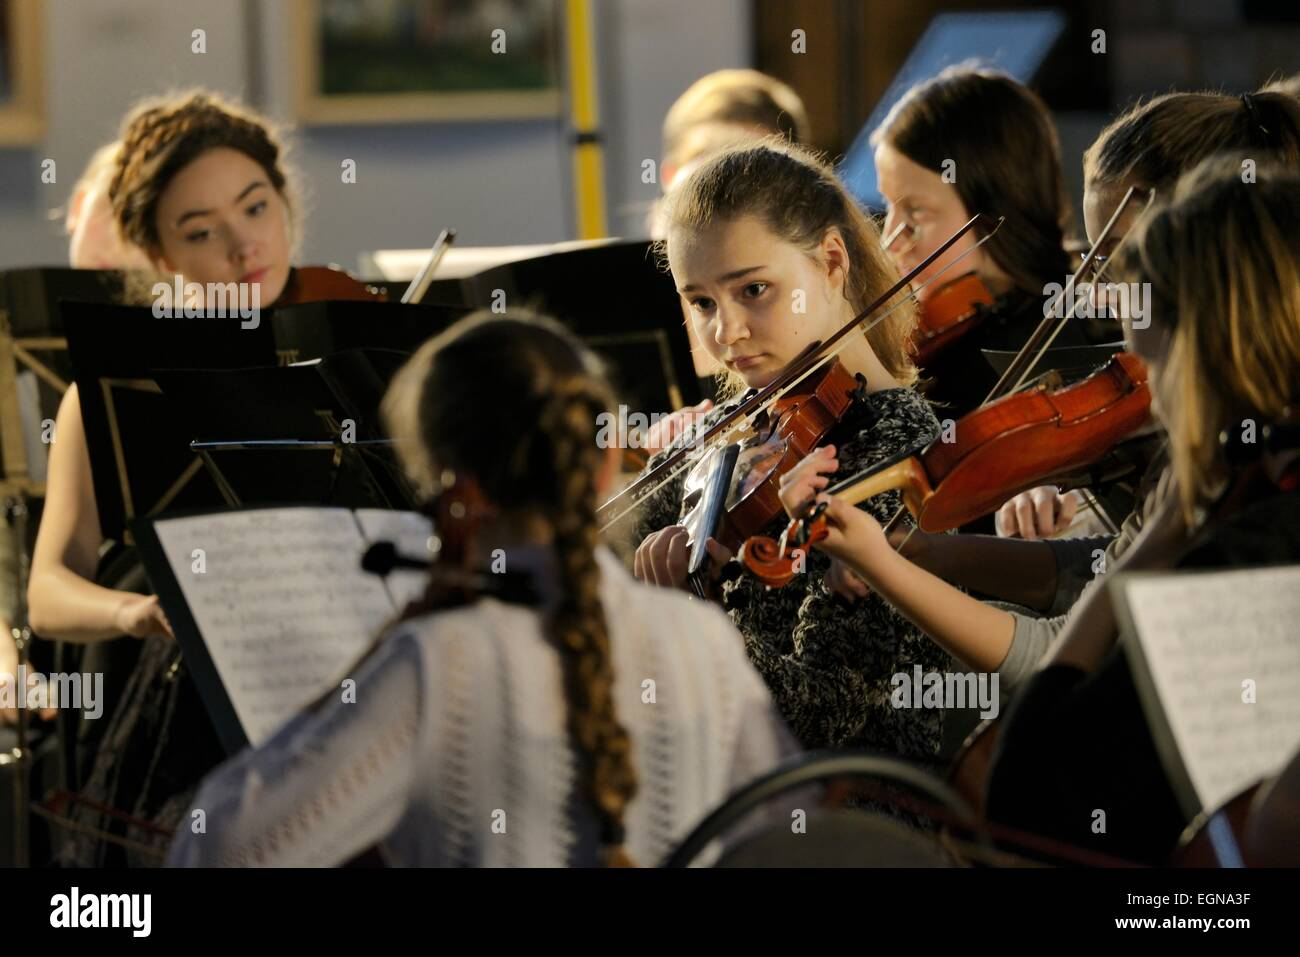 Riga Latvia. Members of youth orchestra during classical music recital inside Saint Peters Church - Stock Image